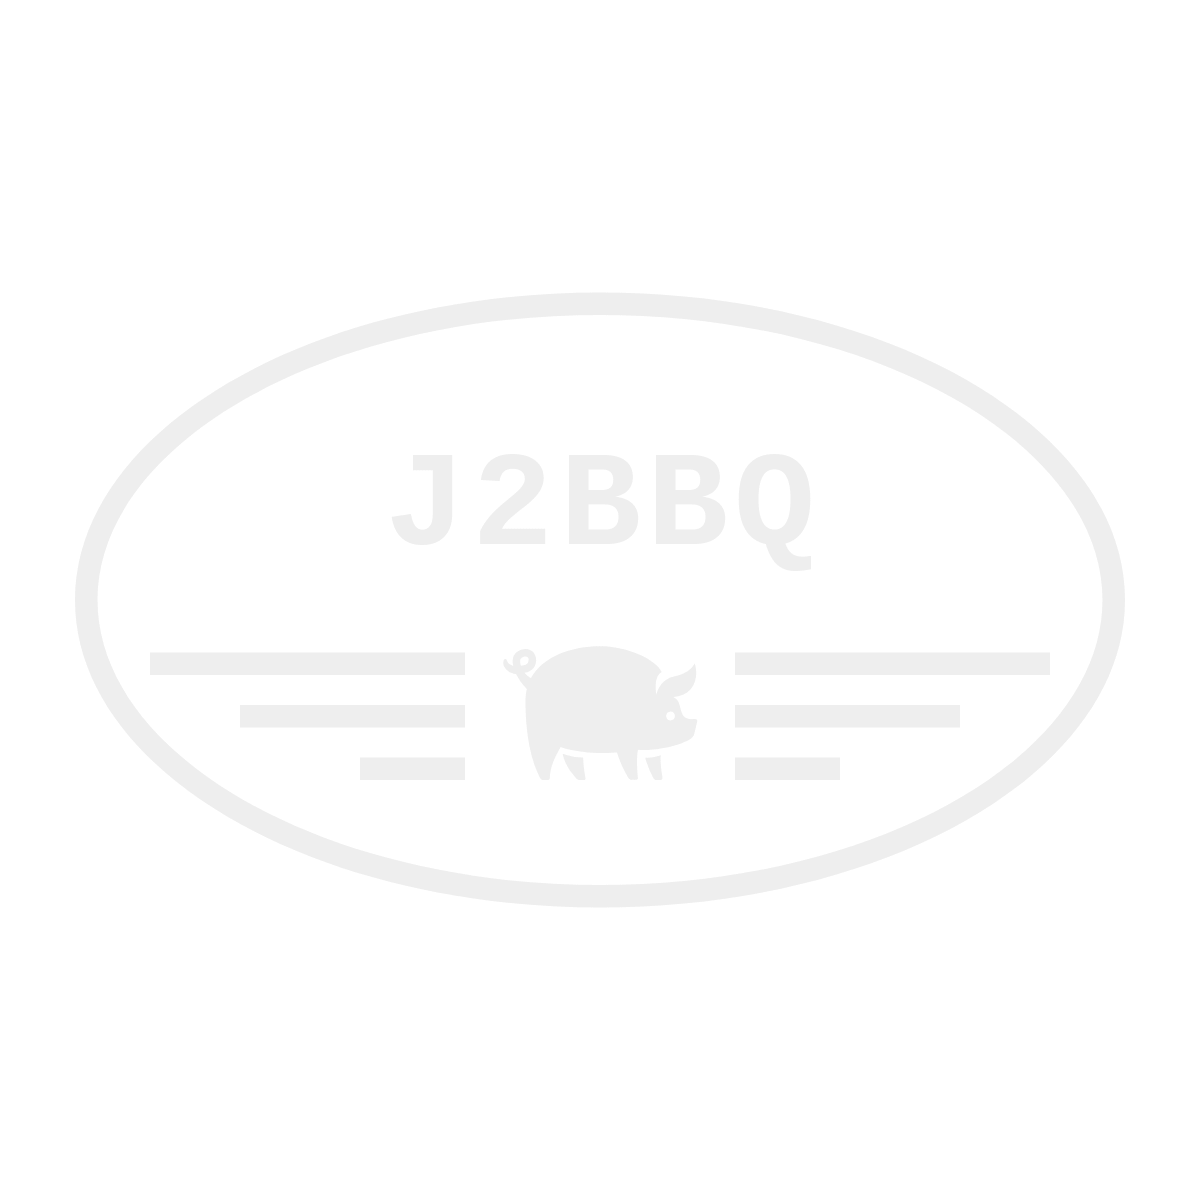 J2BBQ - Barbecue Catering in Fort Wayne, Indiana